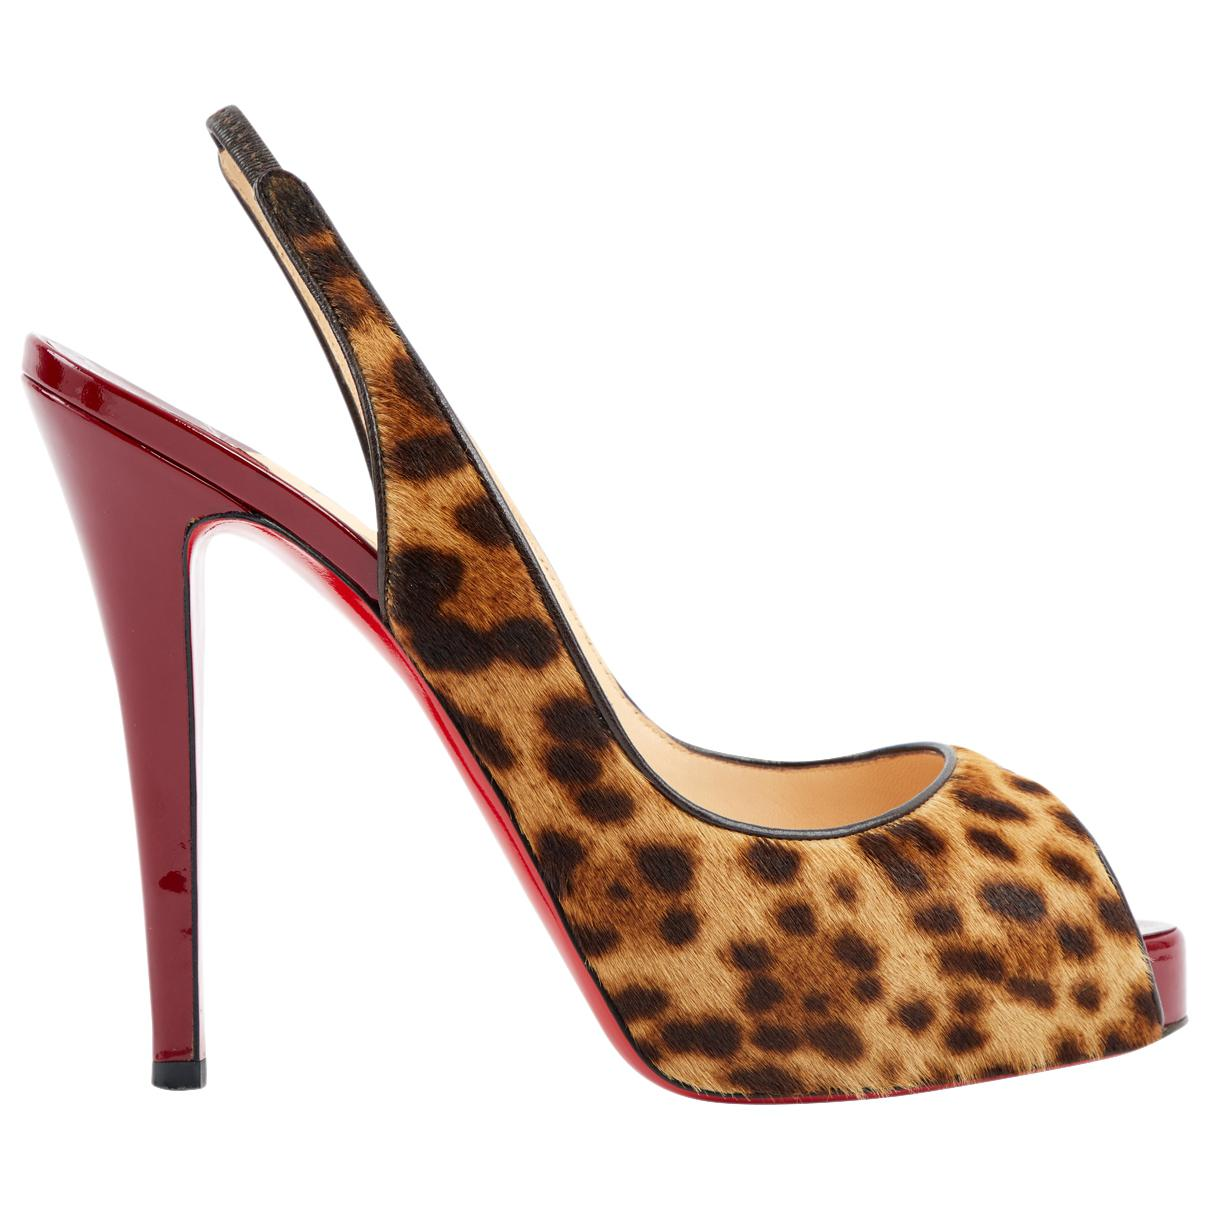 Pre-owned - Private Number pony-style calfskin heels Christian Louboutin pLf1oI